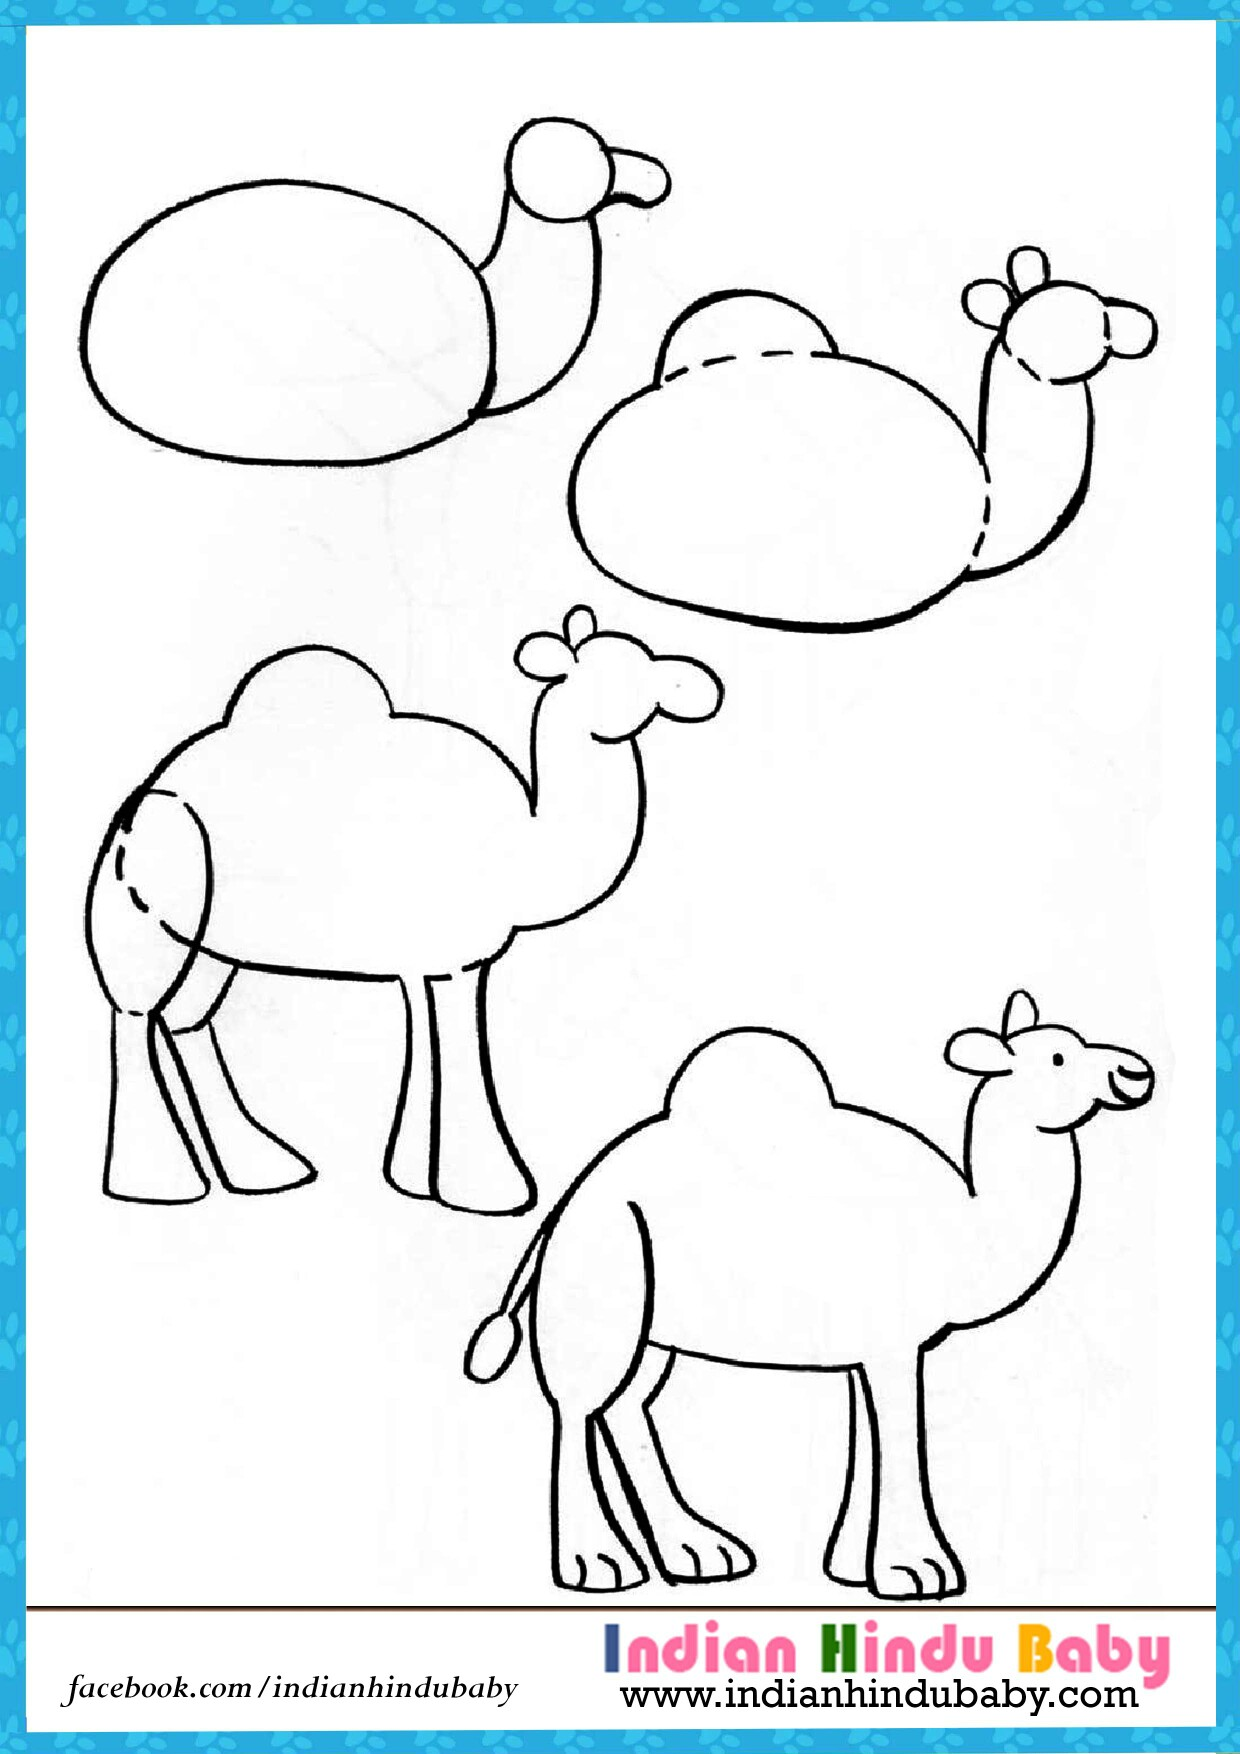 Easy Drawing For Kids Step By Step at GetDrawings.com | Free for ...